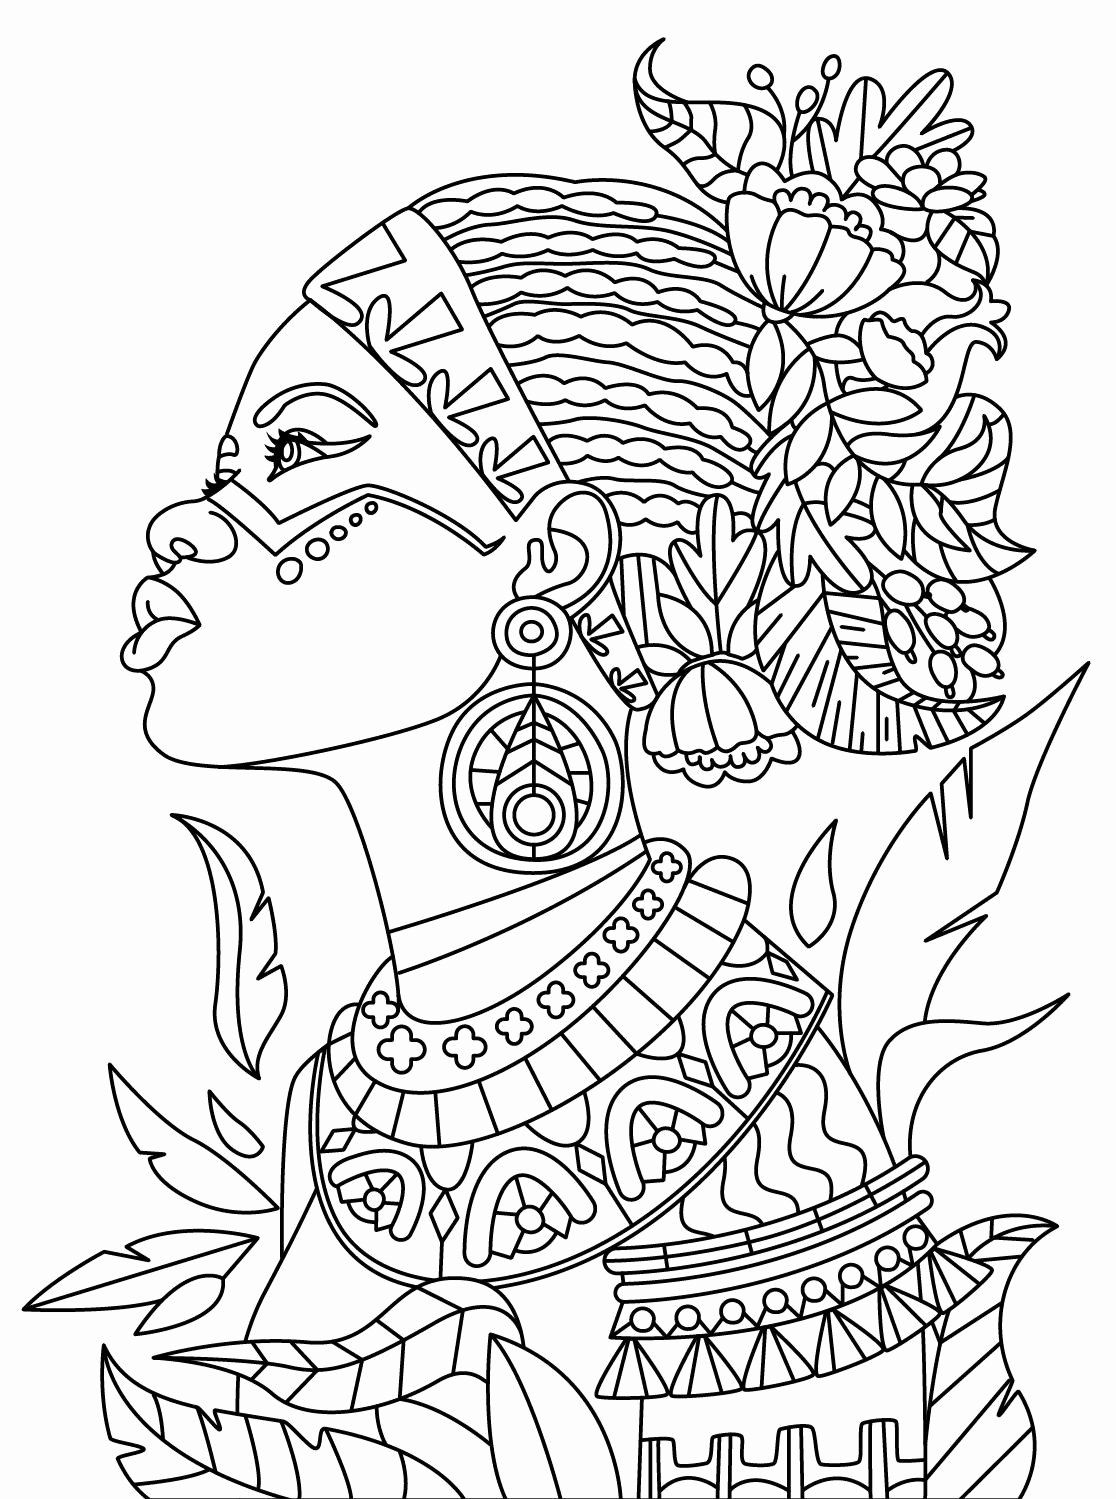 african american coloring pages – lifewiththepeppers.com | 1499x1116